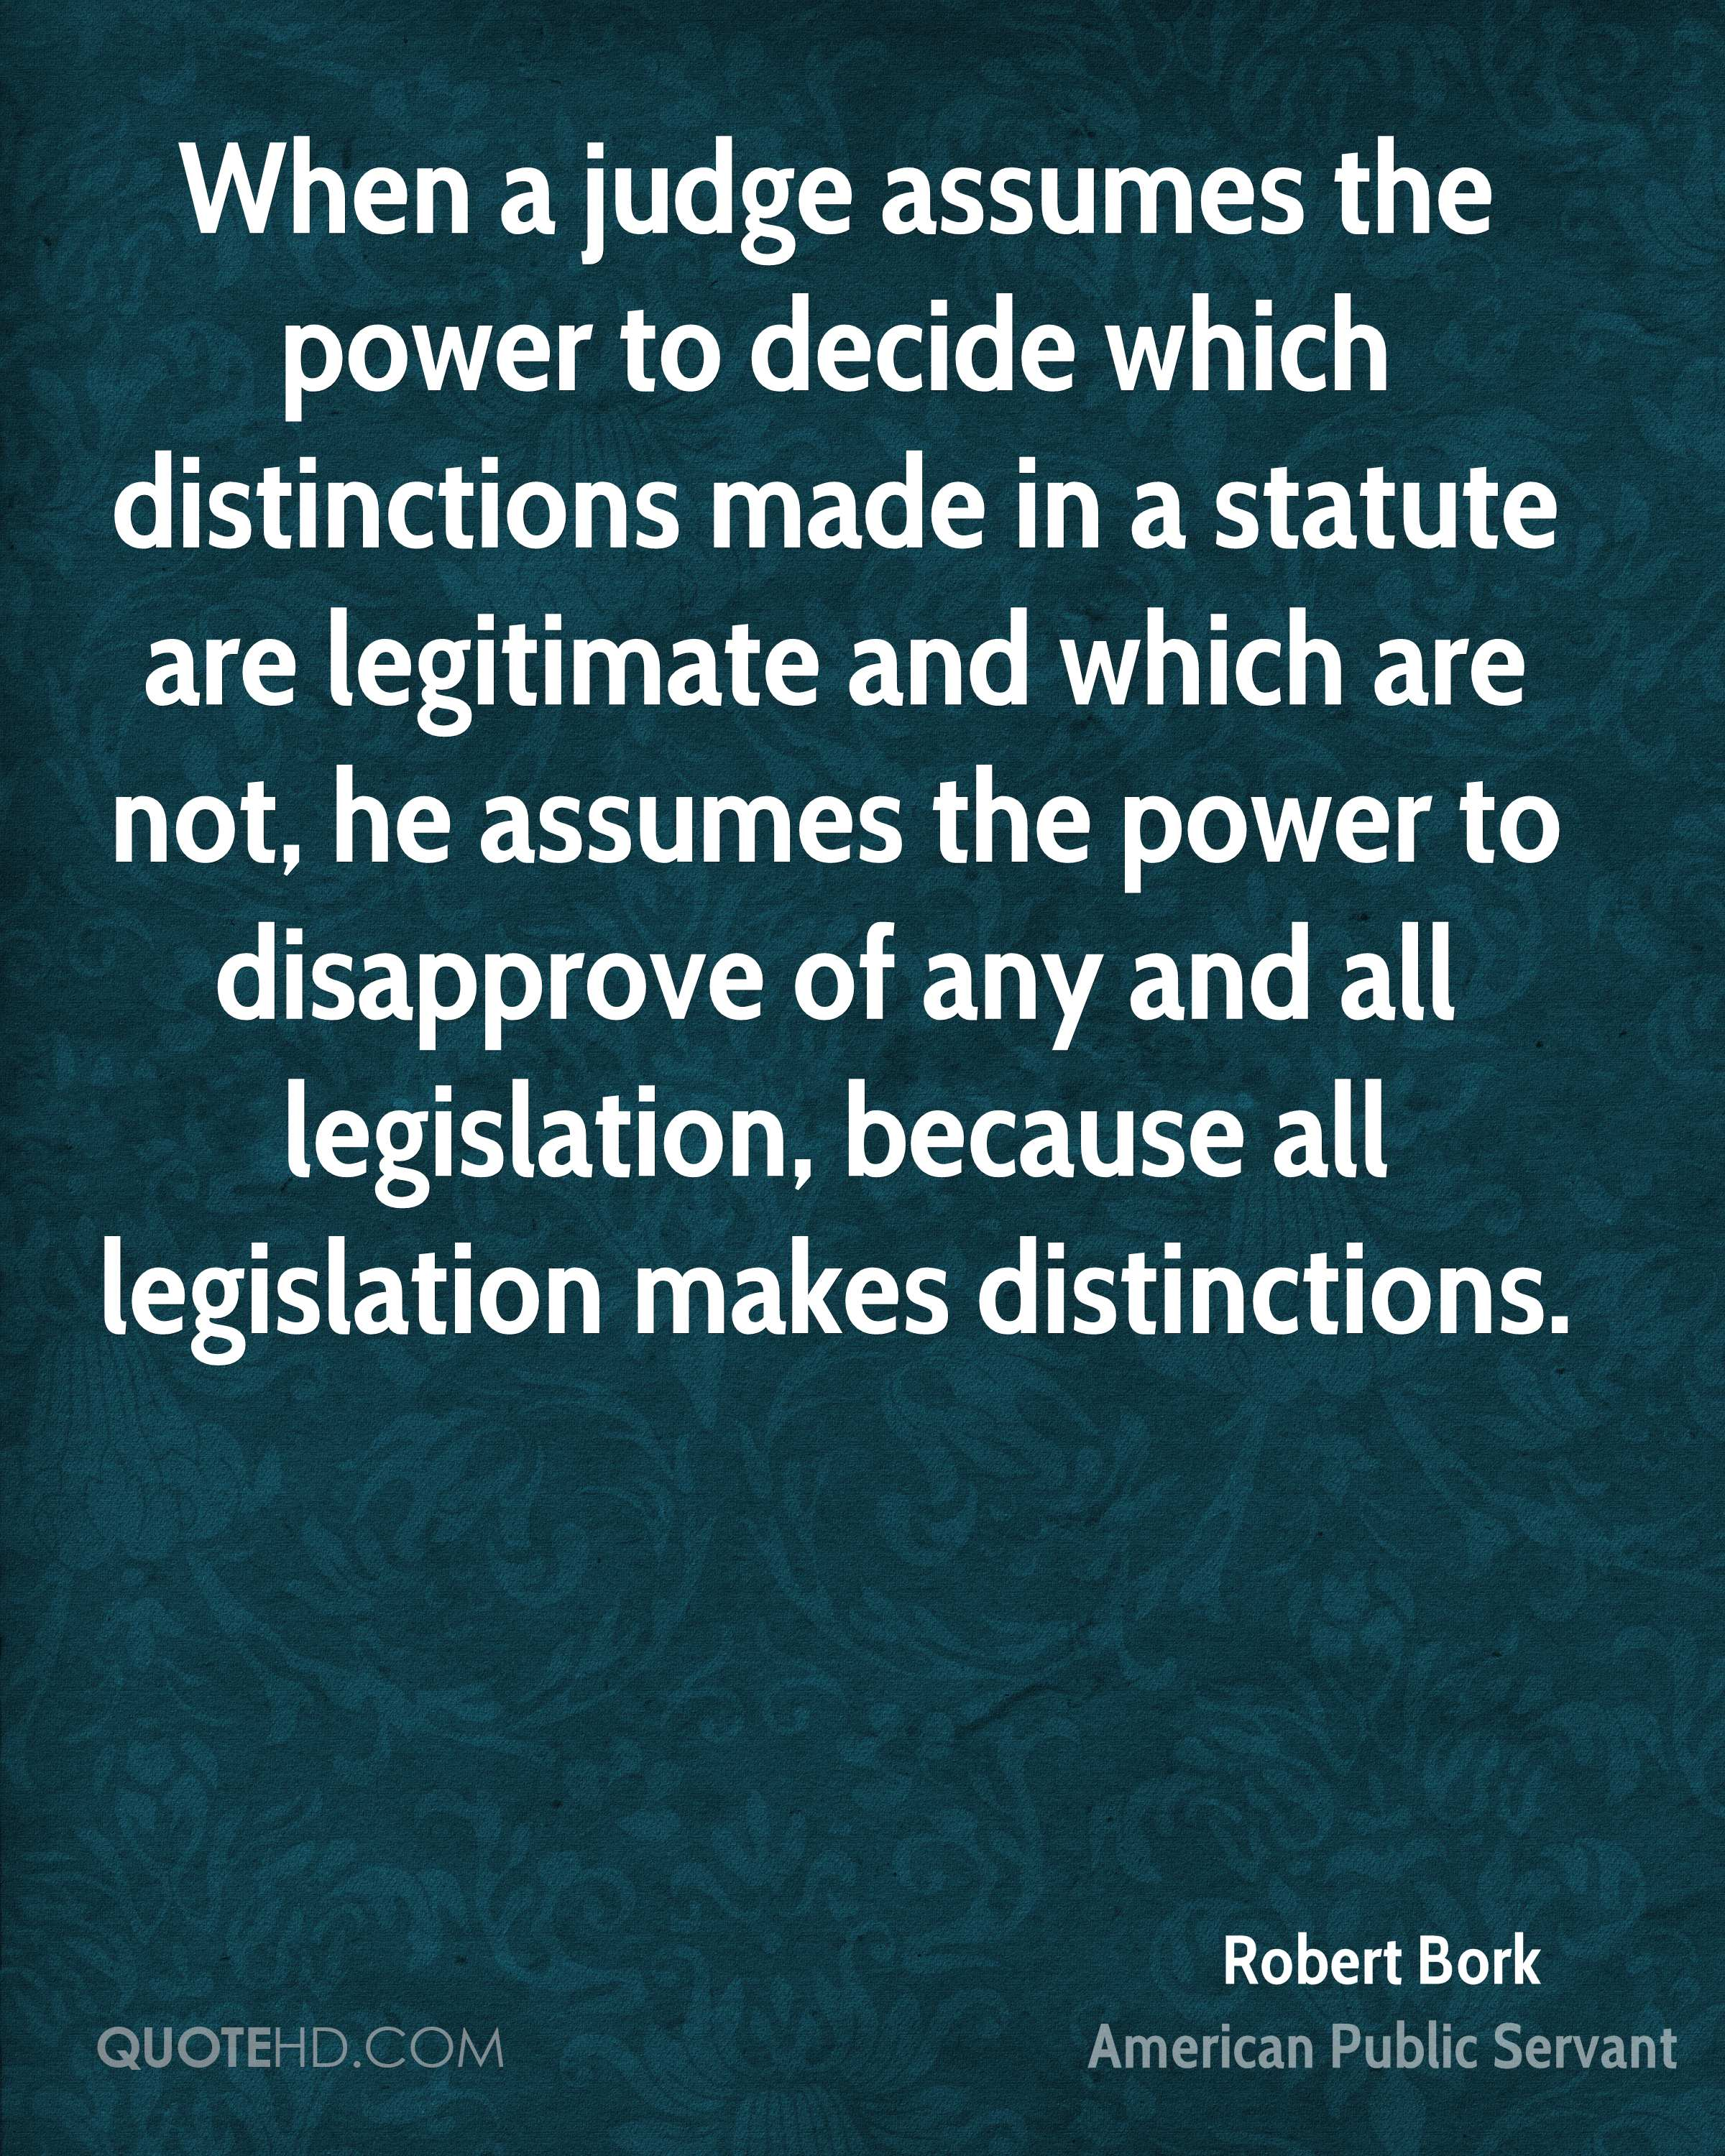 When a judge assumes the power to decide which distinctions made in a statute are legitimate and which are not, he assumes the power to disapprove of any and all legislation, because all legislation makes distinctions.